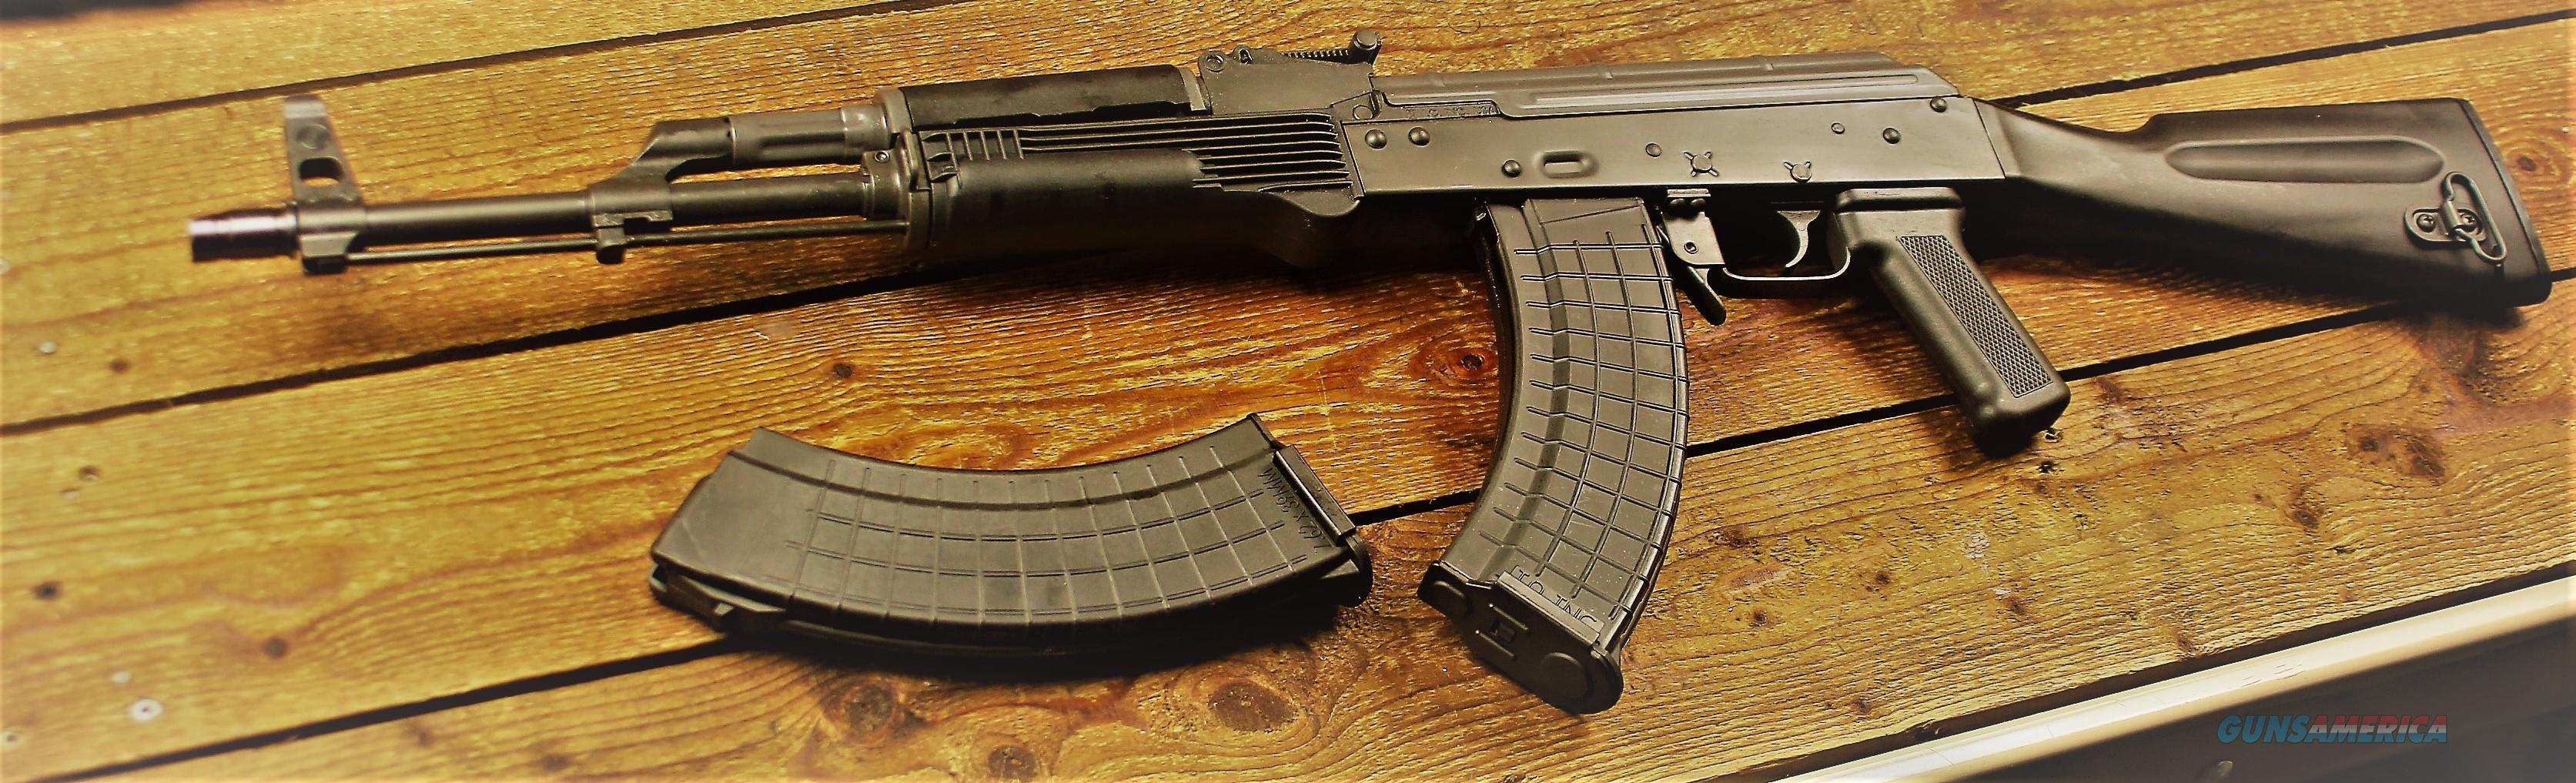 EASY PAY SALE $40 LAYAWAY  I.O. Inc IODM2002 AKM247 Mil-spec receiver akm ak-47 ak ak47 7.62x39 Tactical pistol grip standard accepts all Ak and RPK magazines   Guns > Rifles > AK-47 Rifles (and copies) > Full Stock